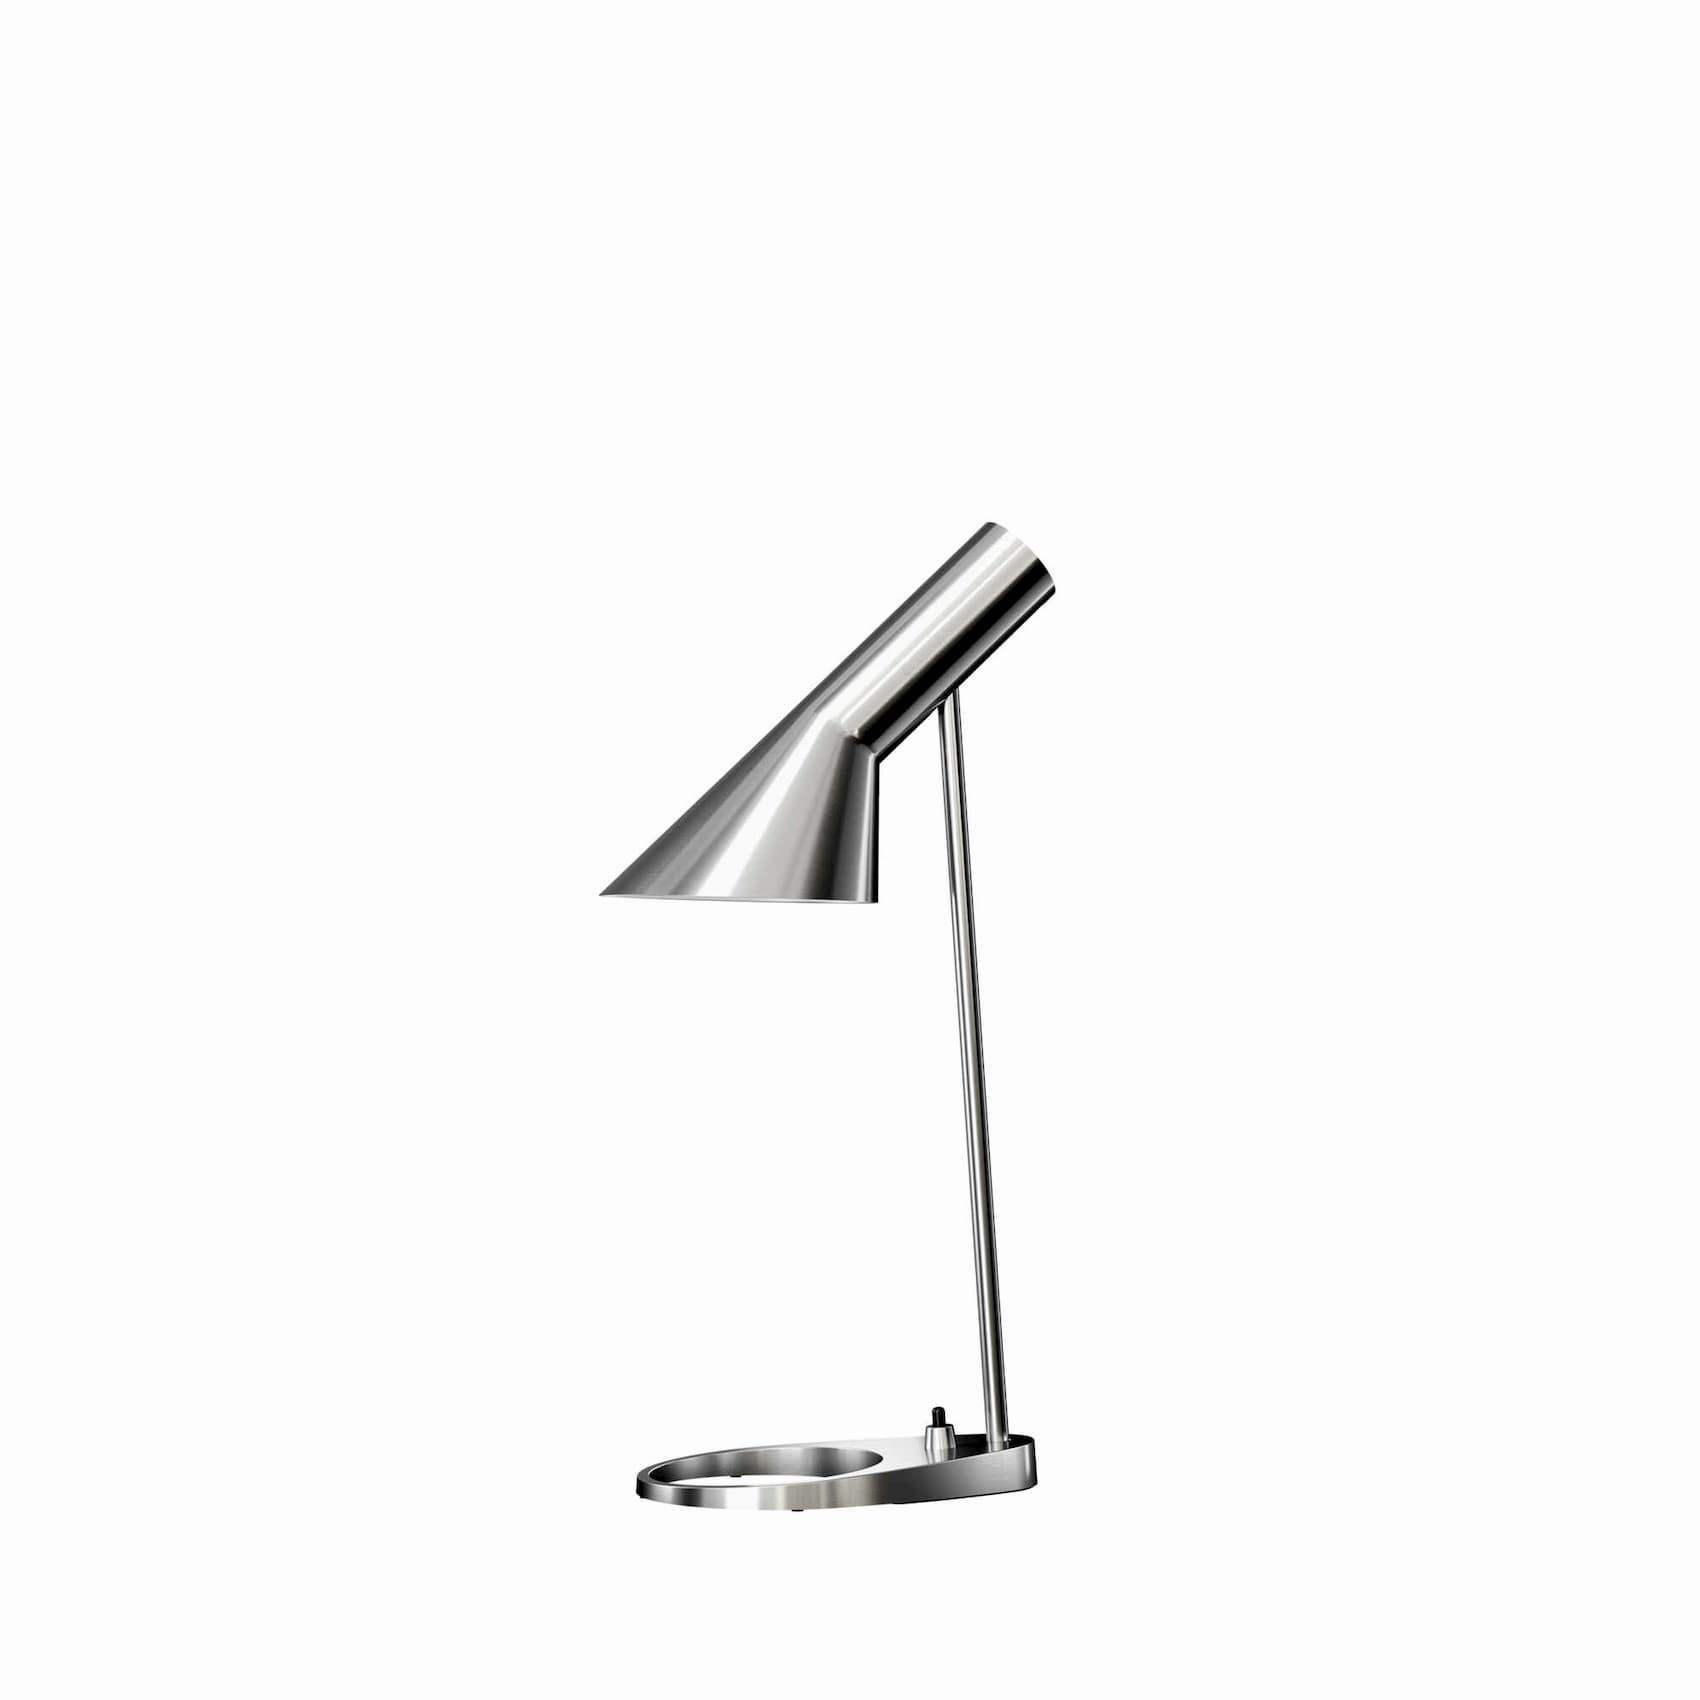 Stainless steel polished - +$79.76